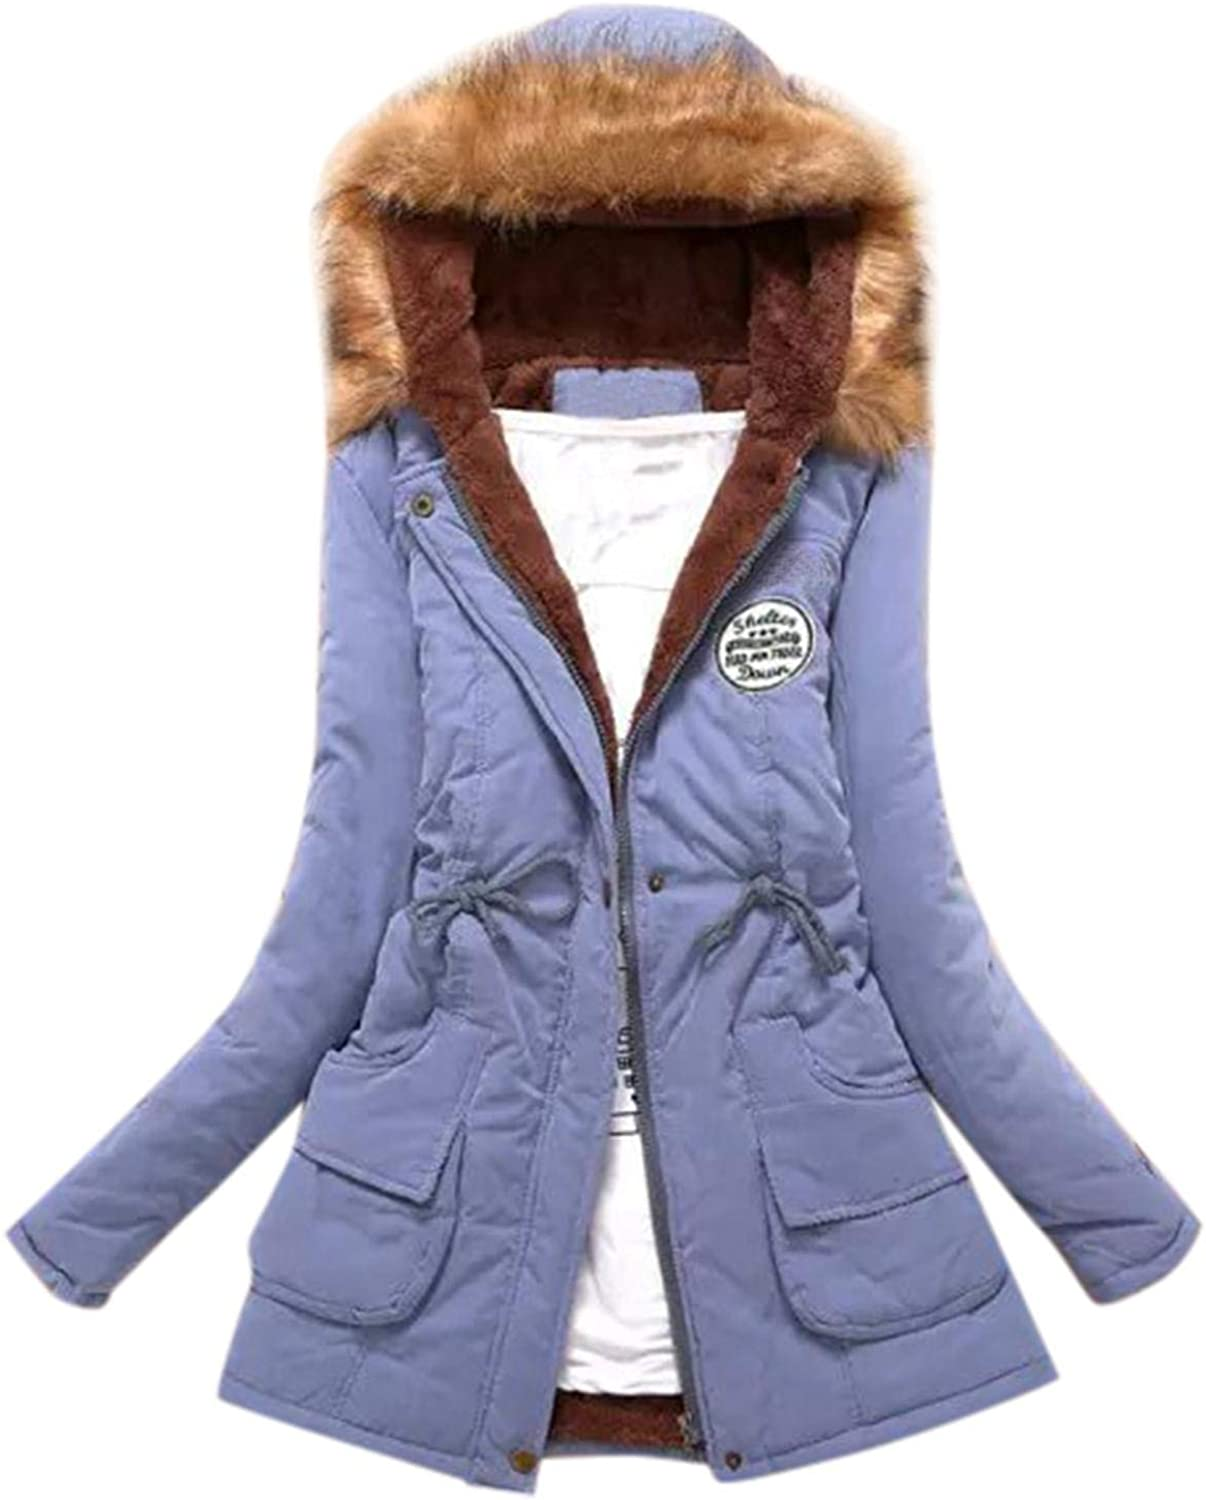 Women Long Jackets Coat Plush Online limited product Padded Cotton Cheap super special price Fleece Hoodies Lined